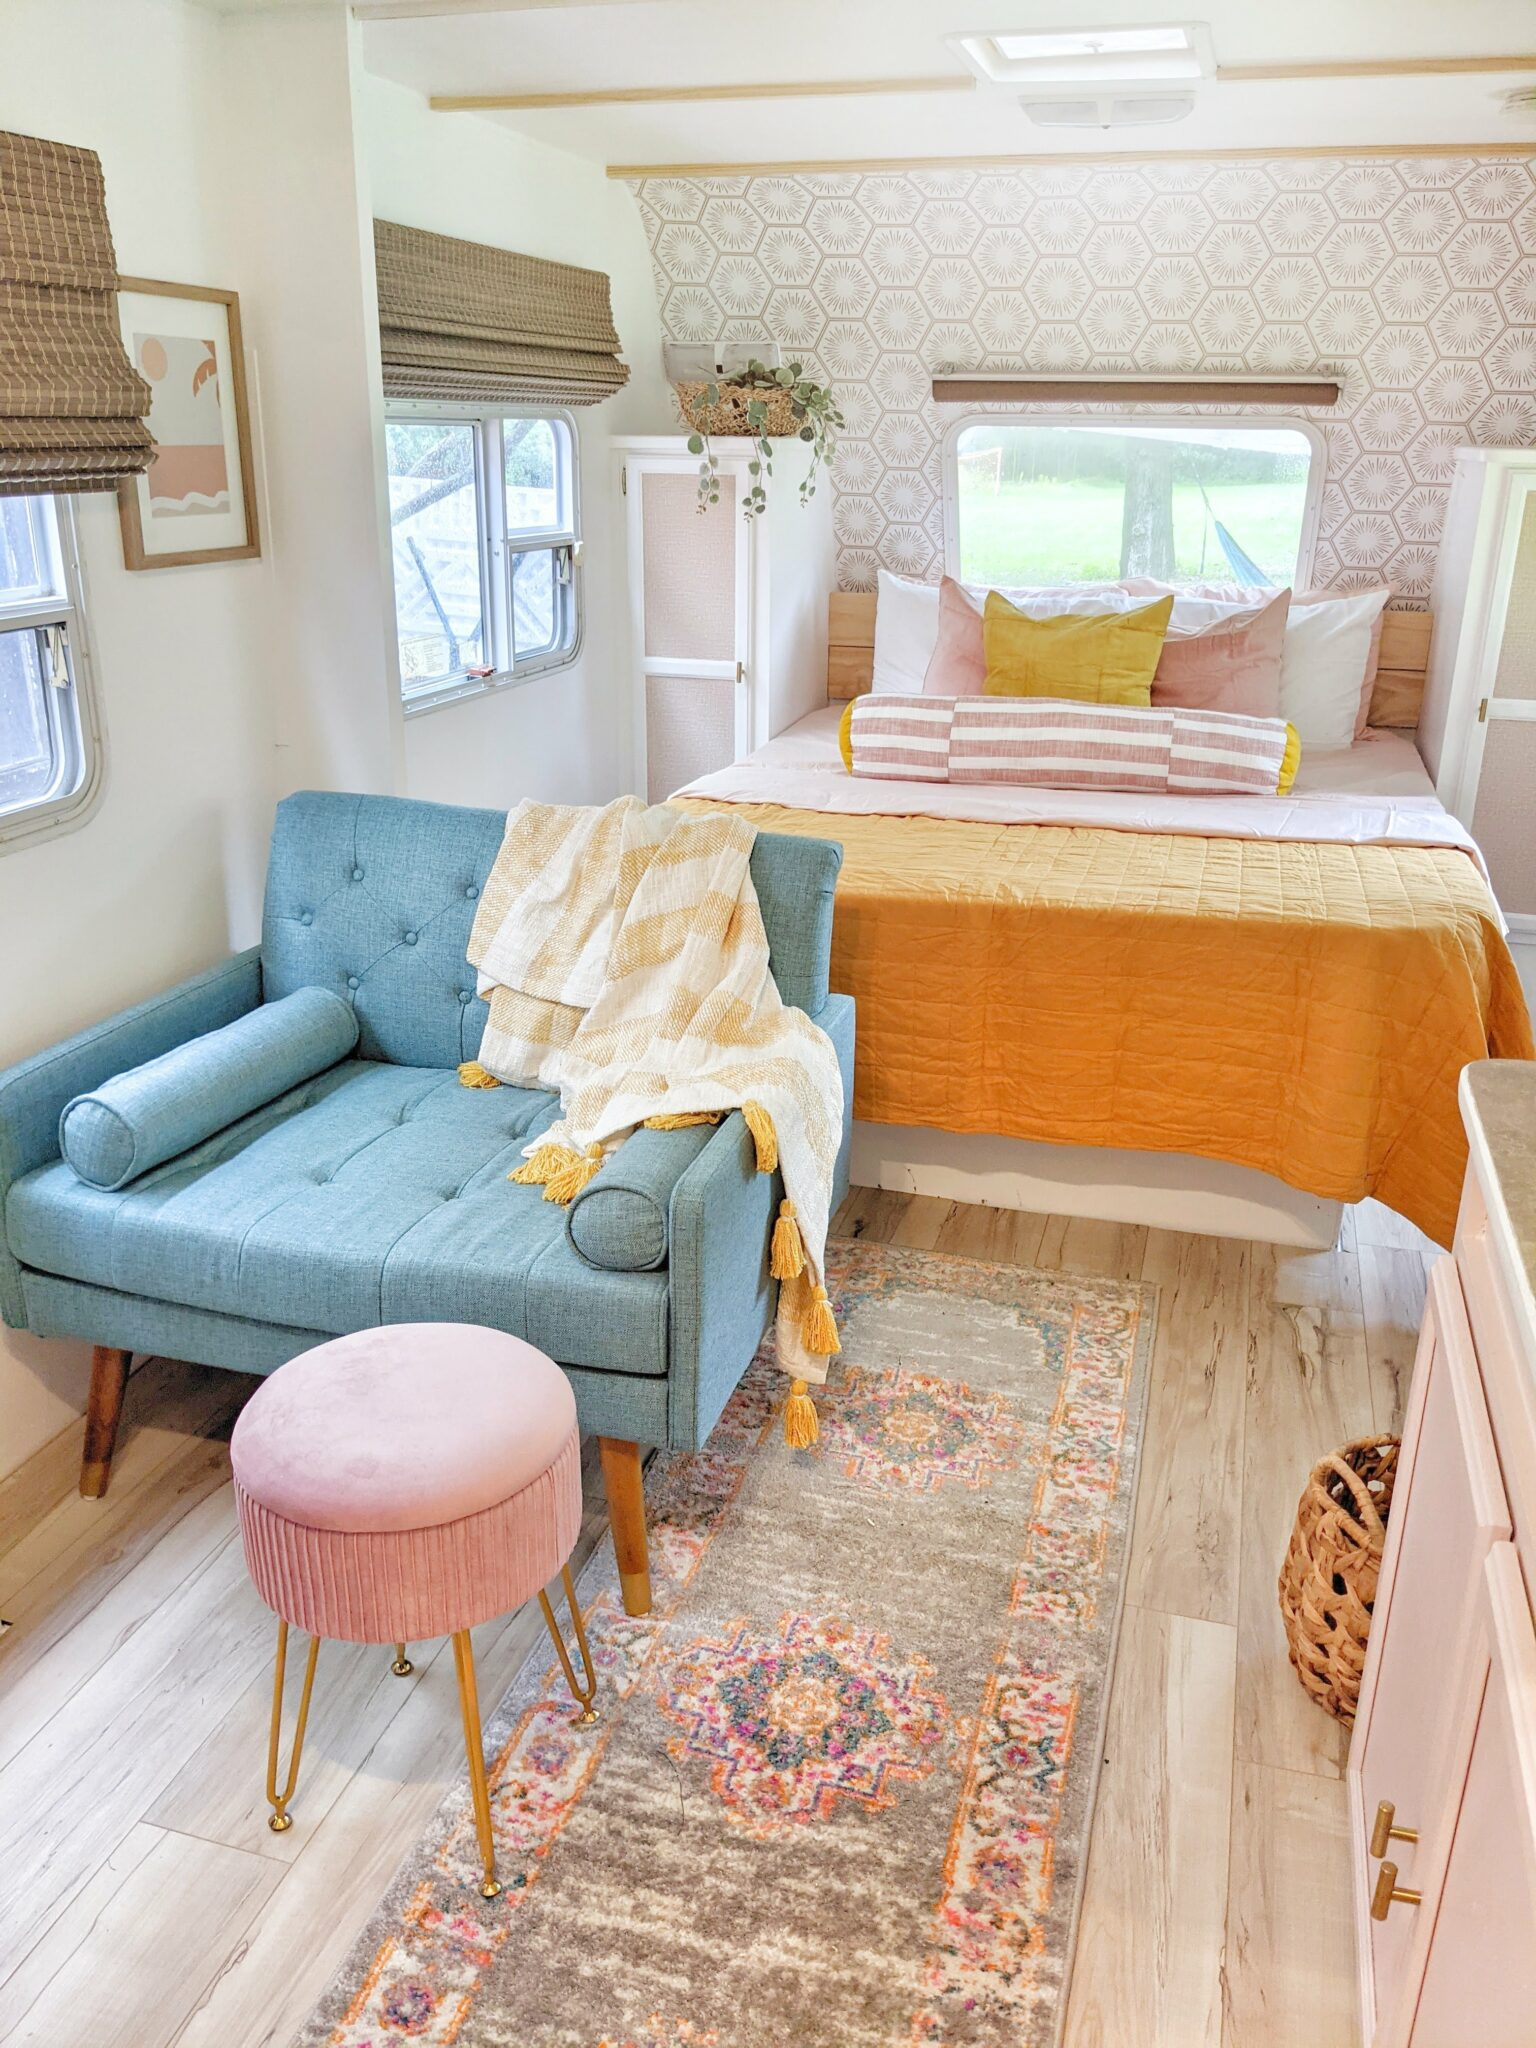 Renovation Progress and Sources for the Trail Cruiser RV All Things with Purpose Sarah Lemp 1